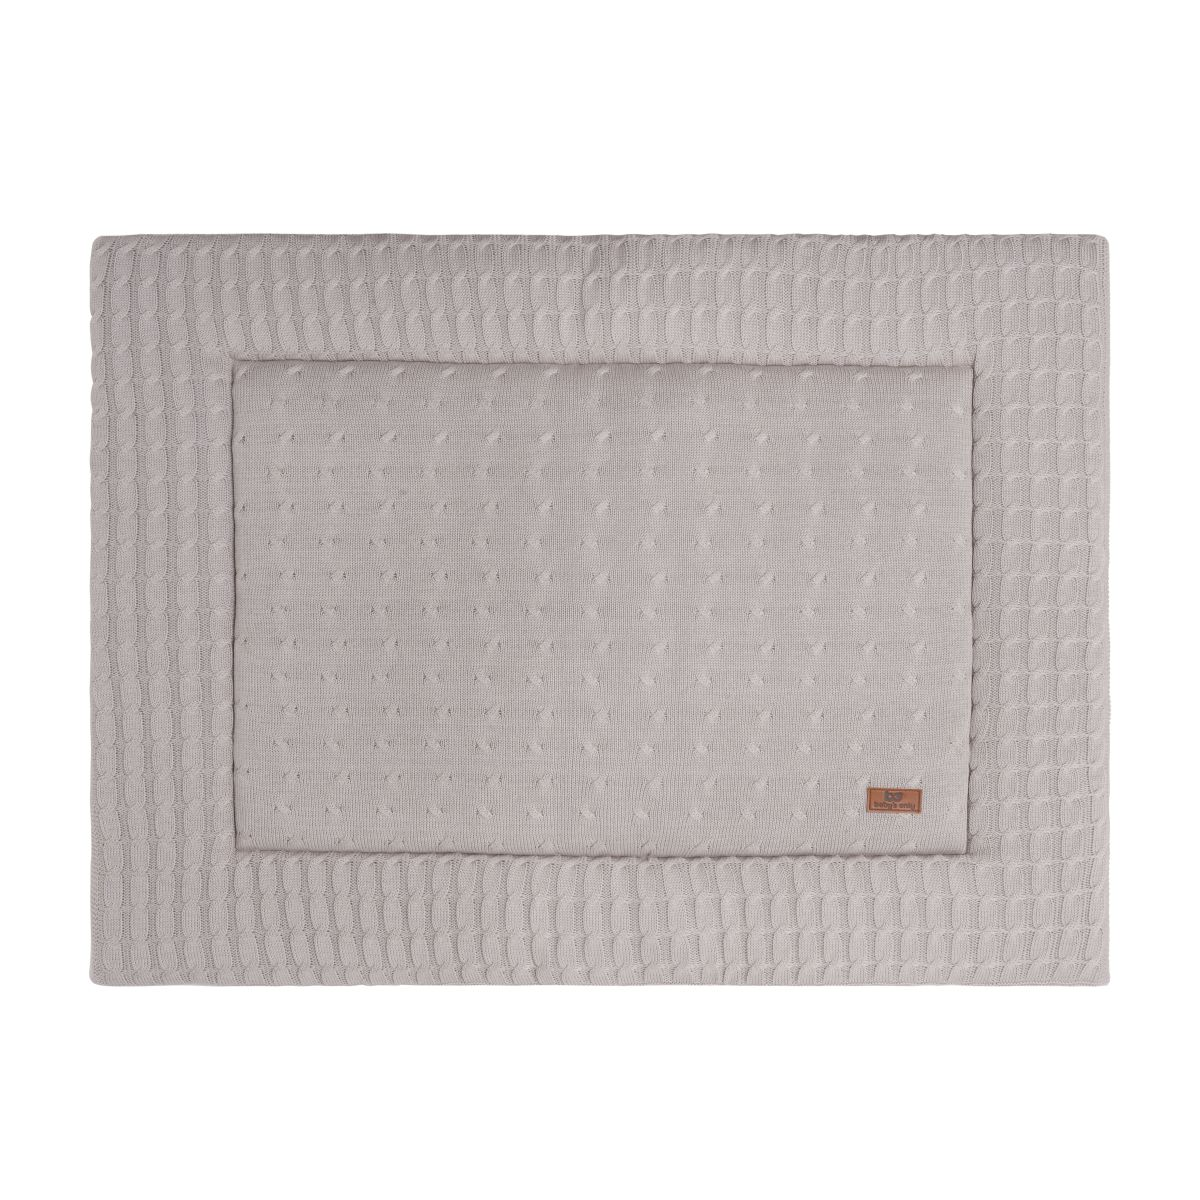 babys only bo01300203648 boxkleed 80x100 cm cable leem 1